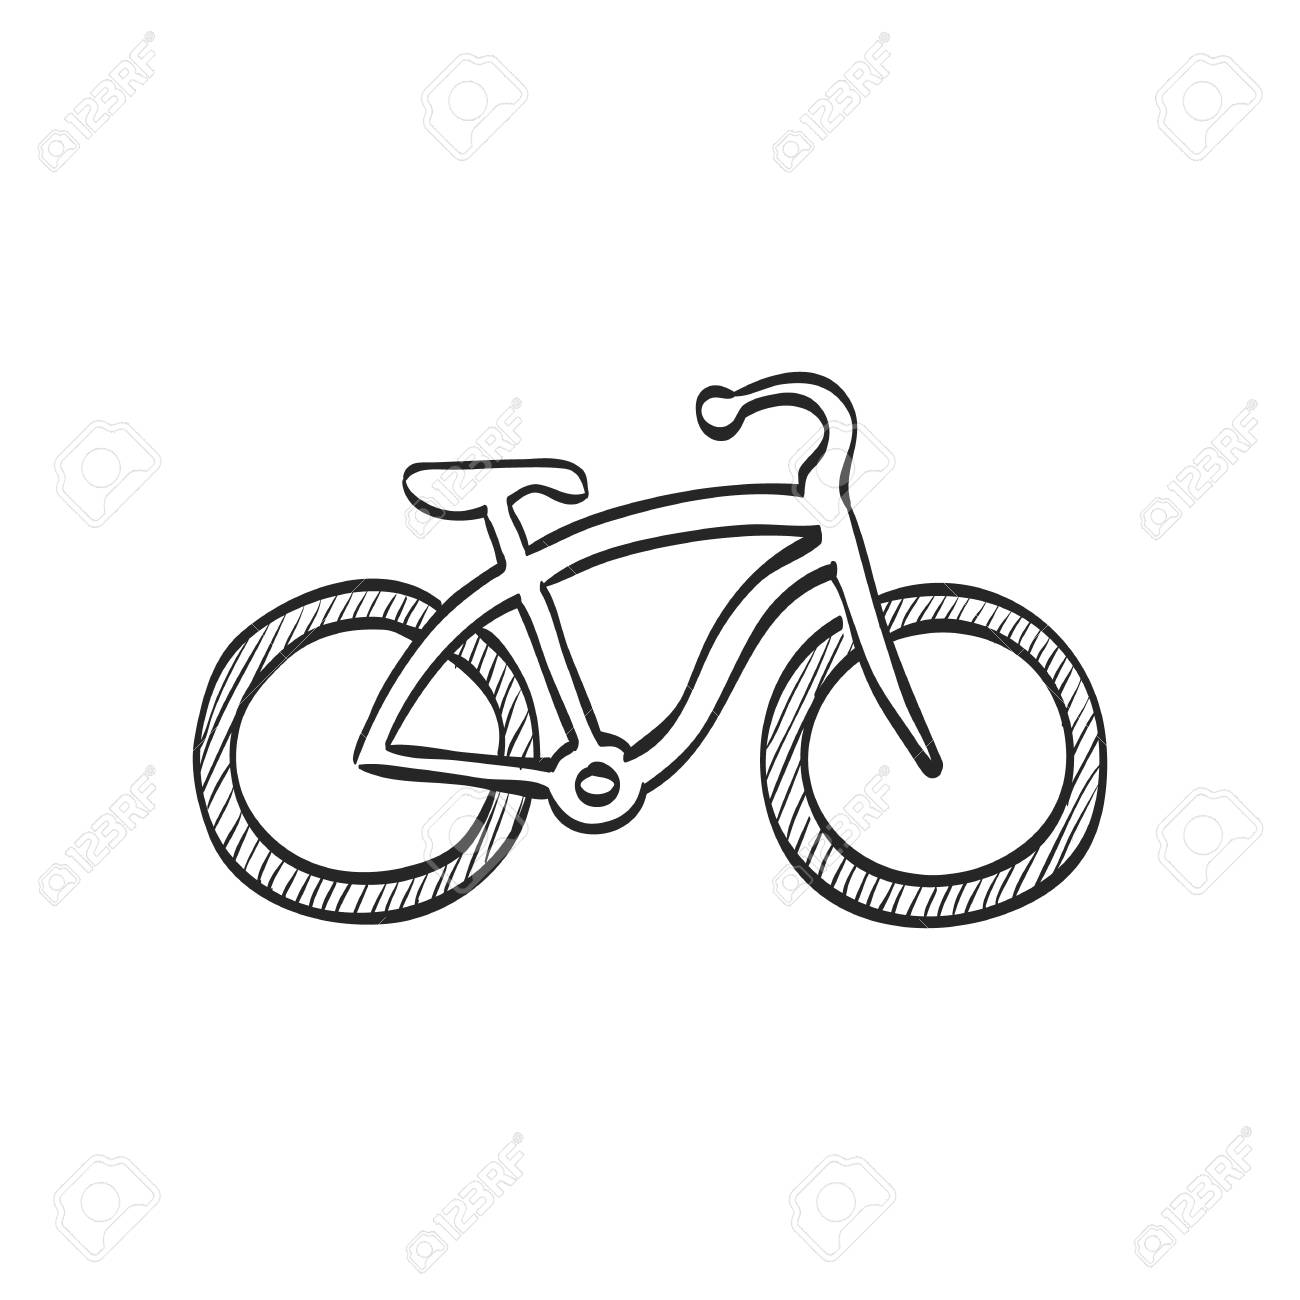 1300x1300 Low Rider Bicycle Icon In Doodle Sketch Lines. Sport